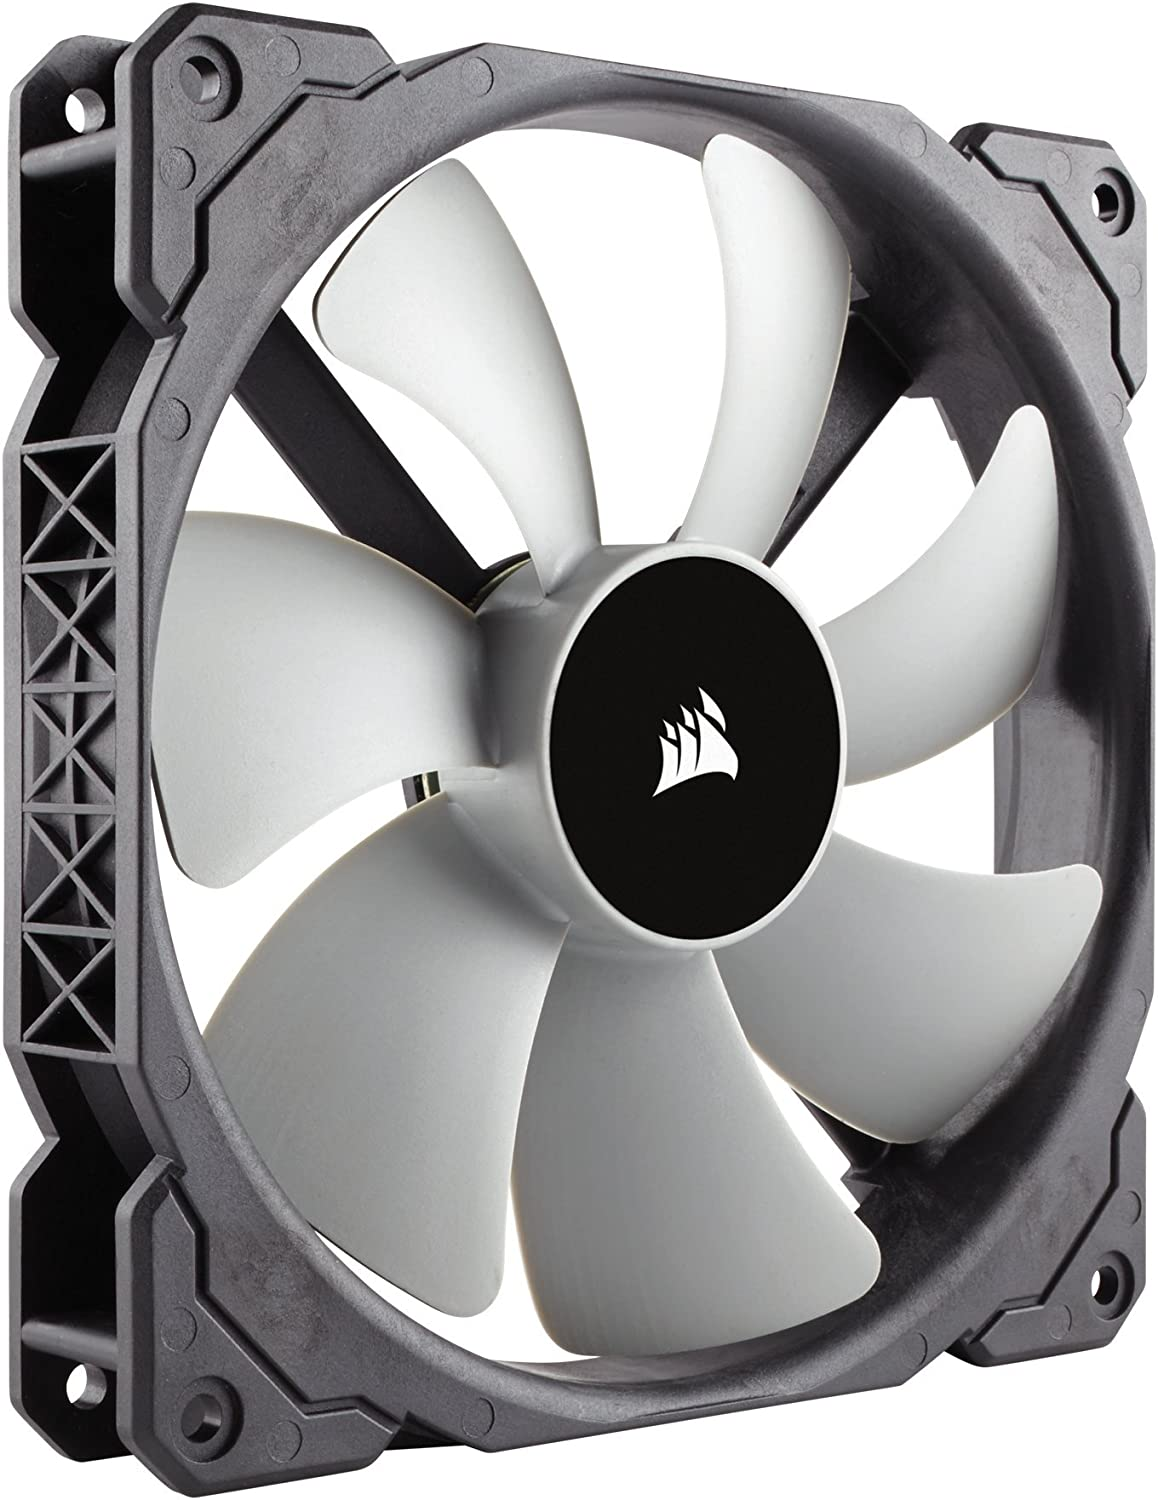 2-Pack 140mm Premium Magnetic Levitation Fan Corsair ML140